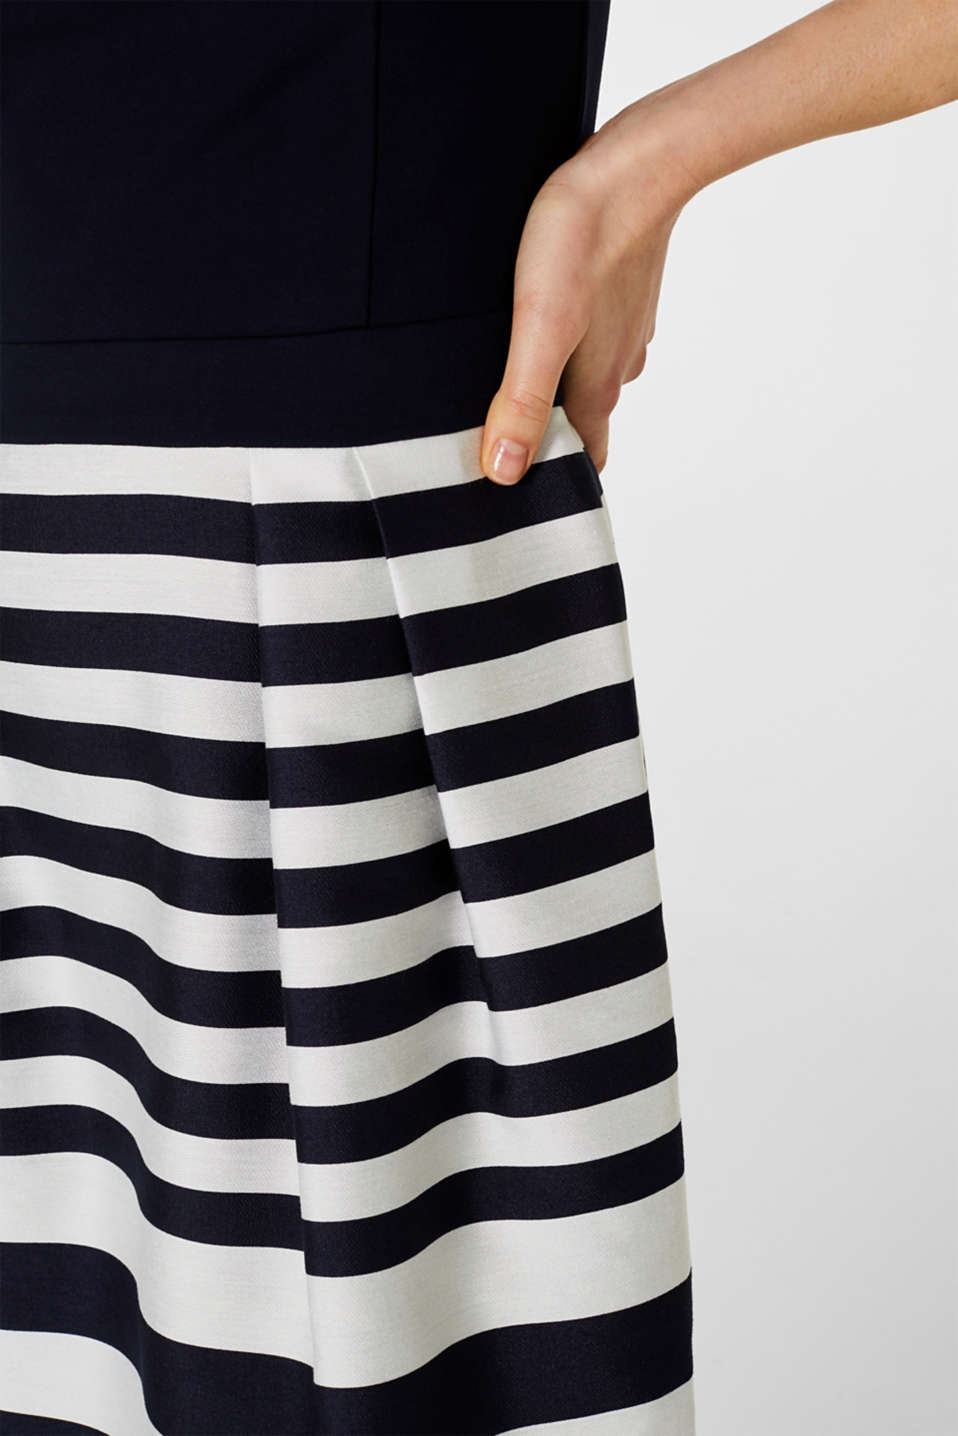 Stretch jersey and fabric dress, NAVY, detail image number 4